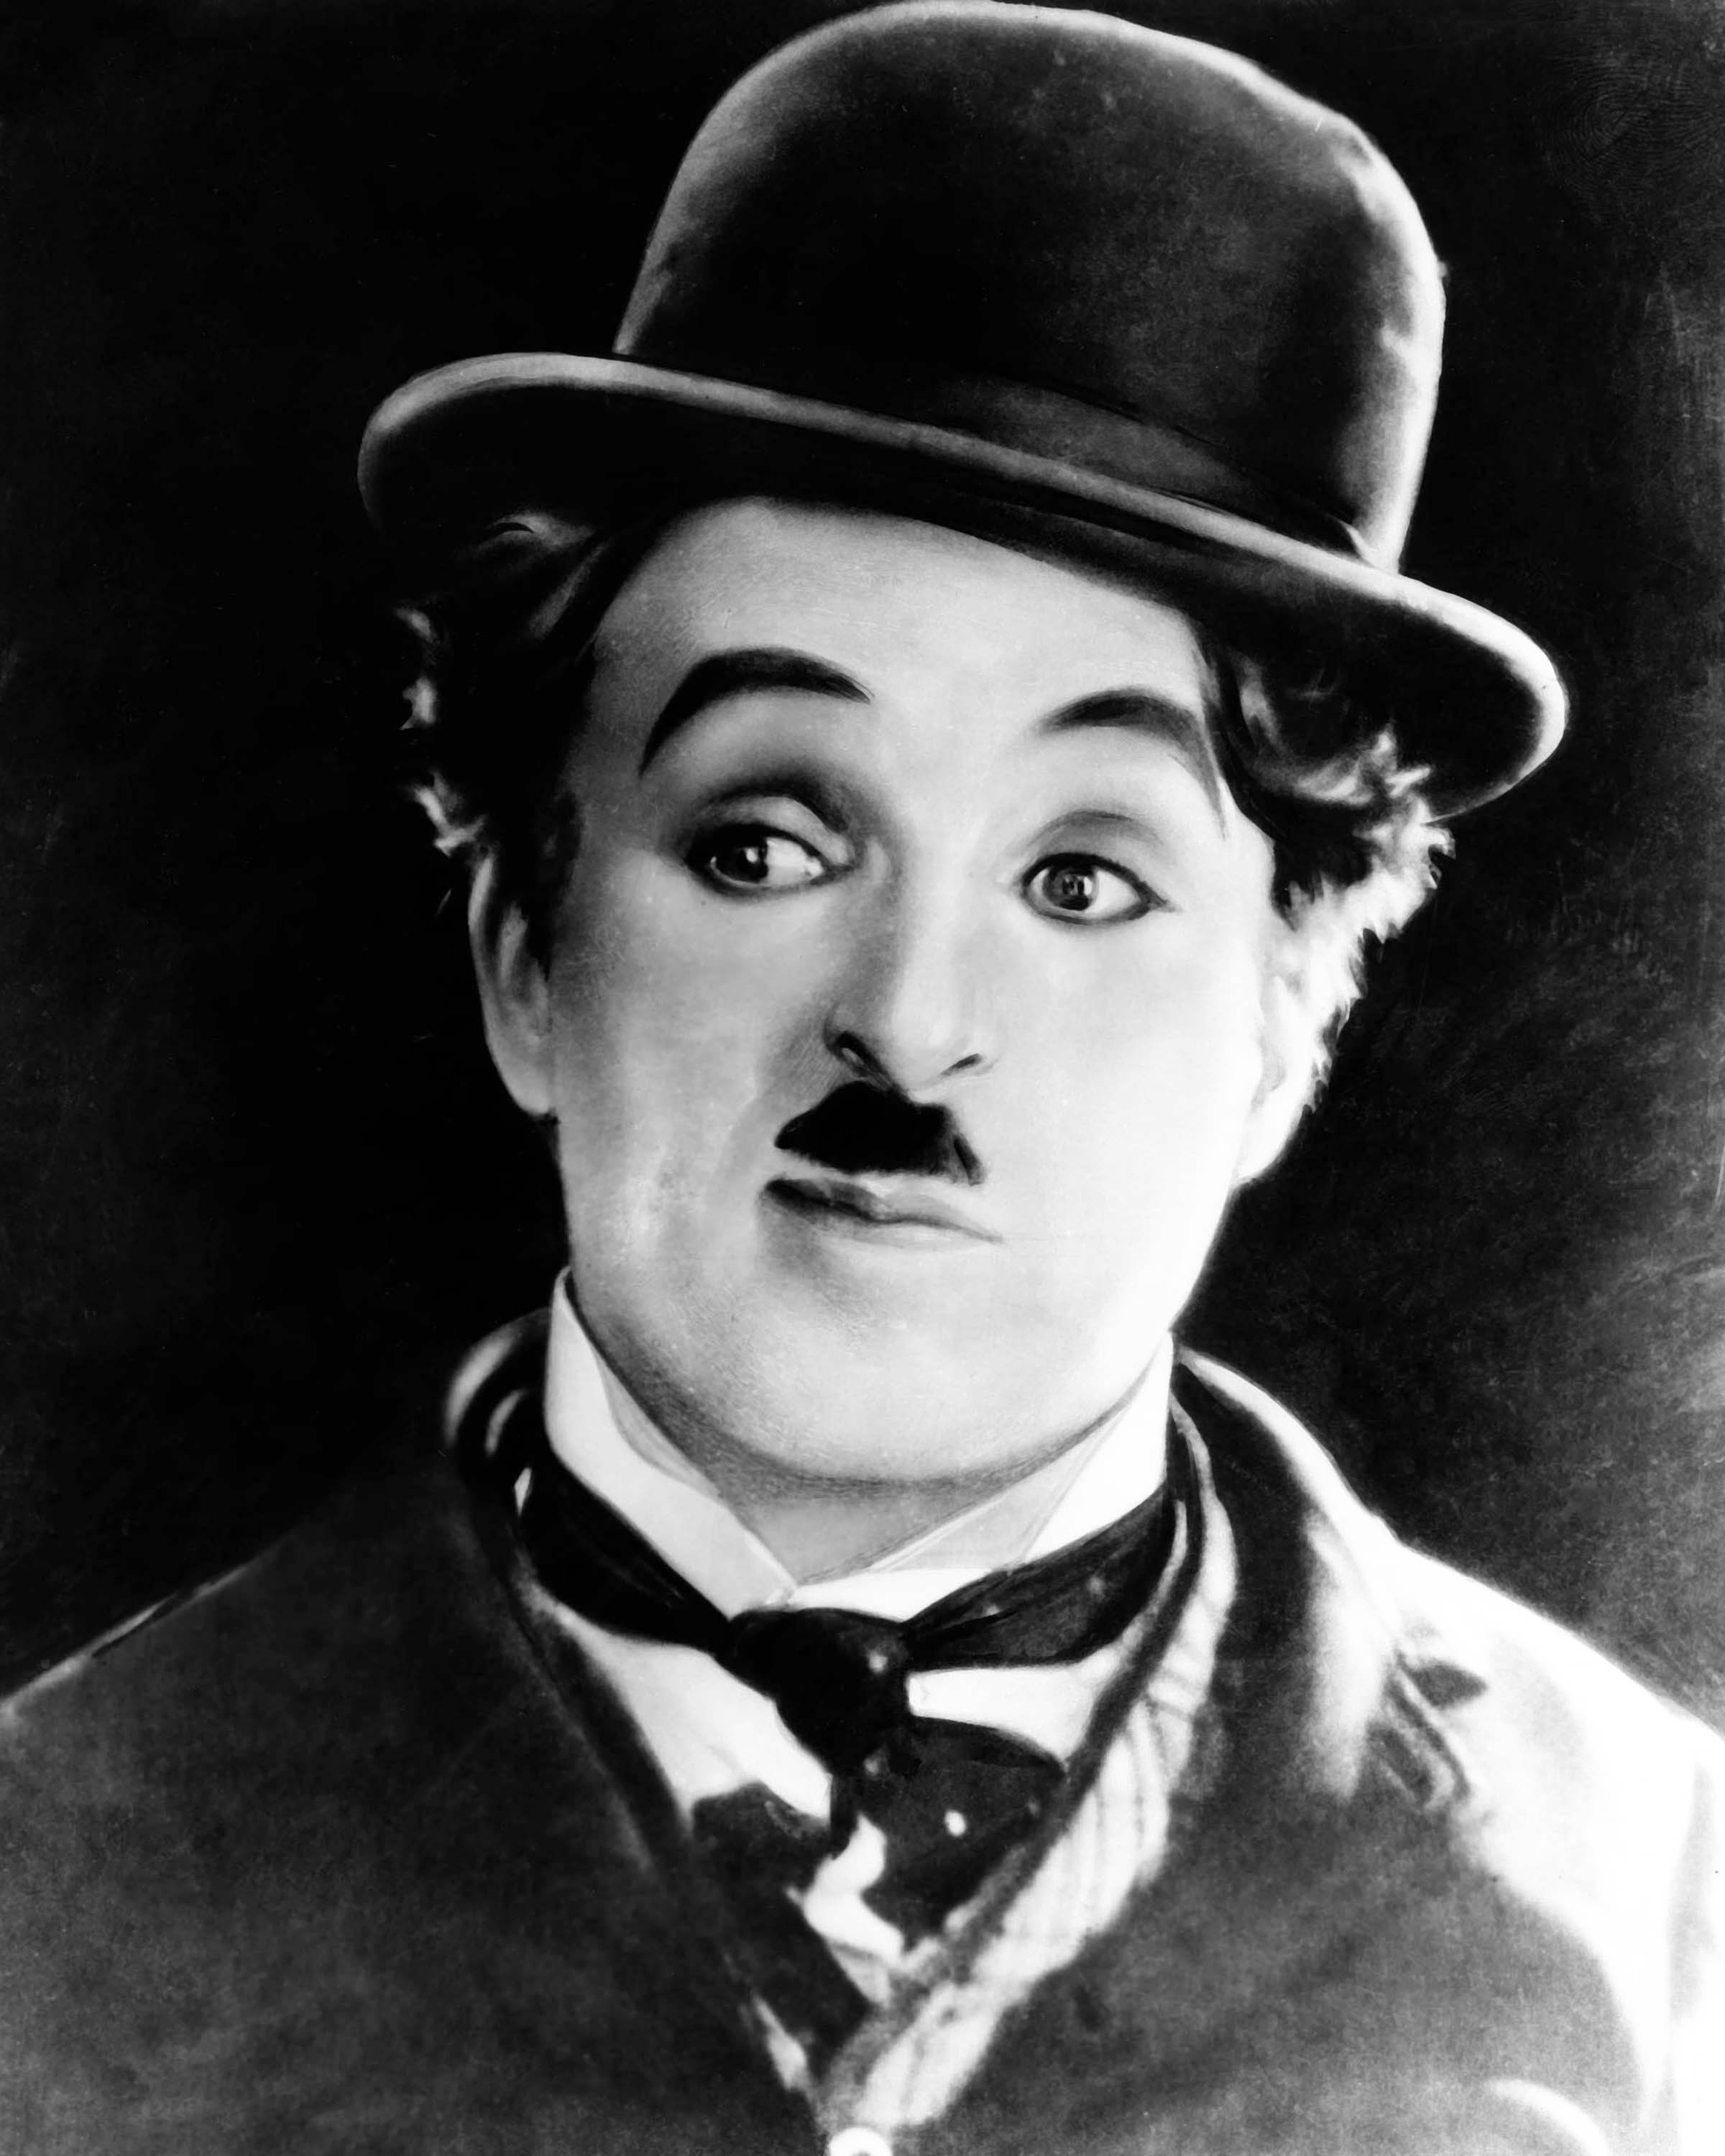 English actor and filmmaker Charlie Chaplin (1889 - 1977) as the Tramp in the silent film 'The Circus', 1928 | Photo: GettyImages